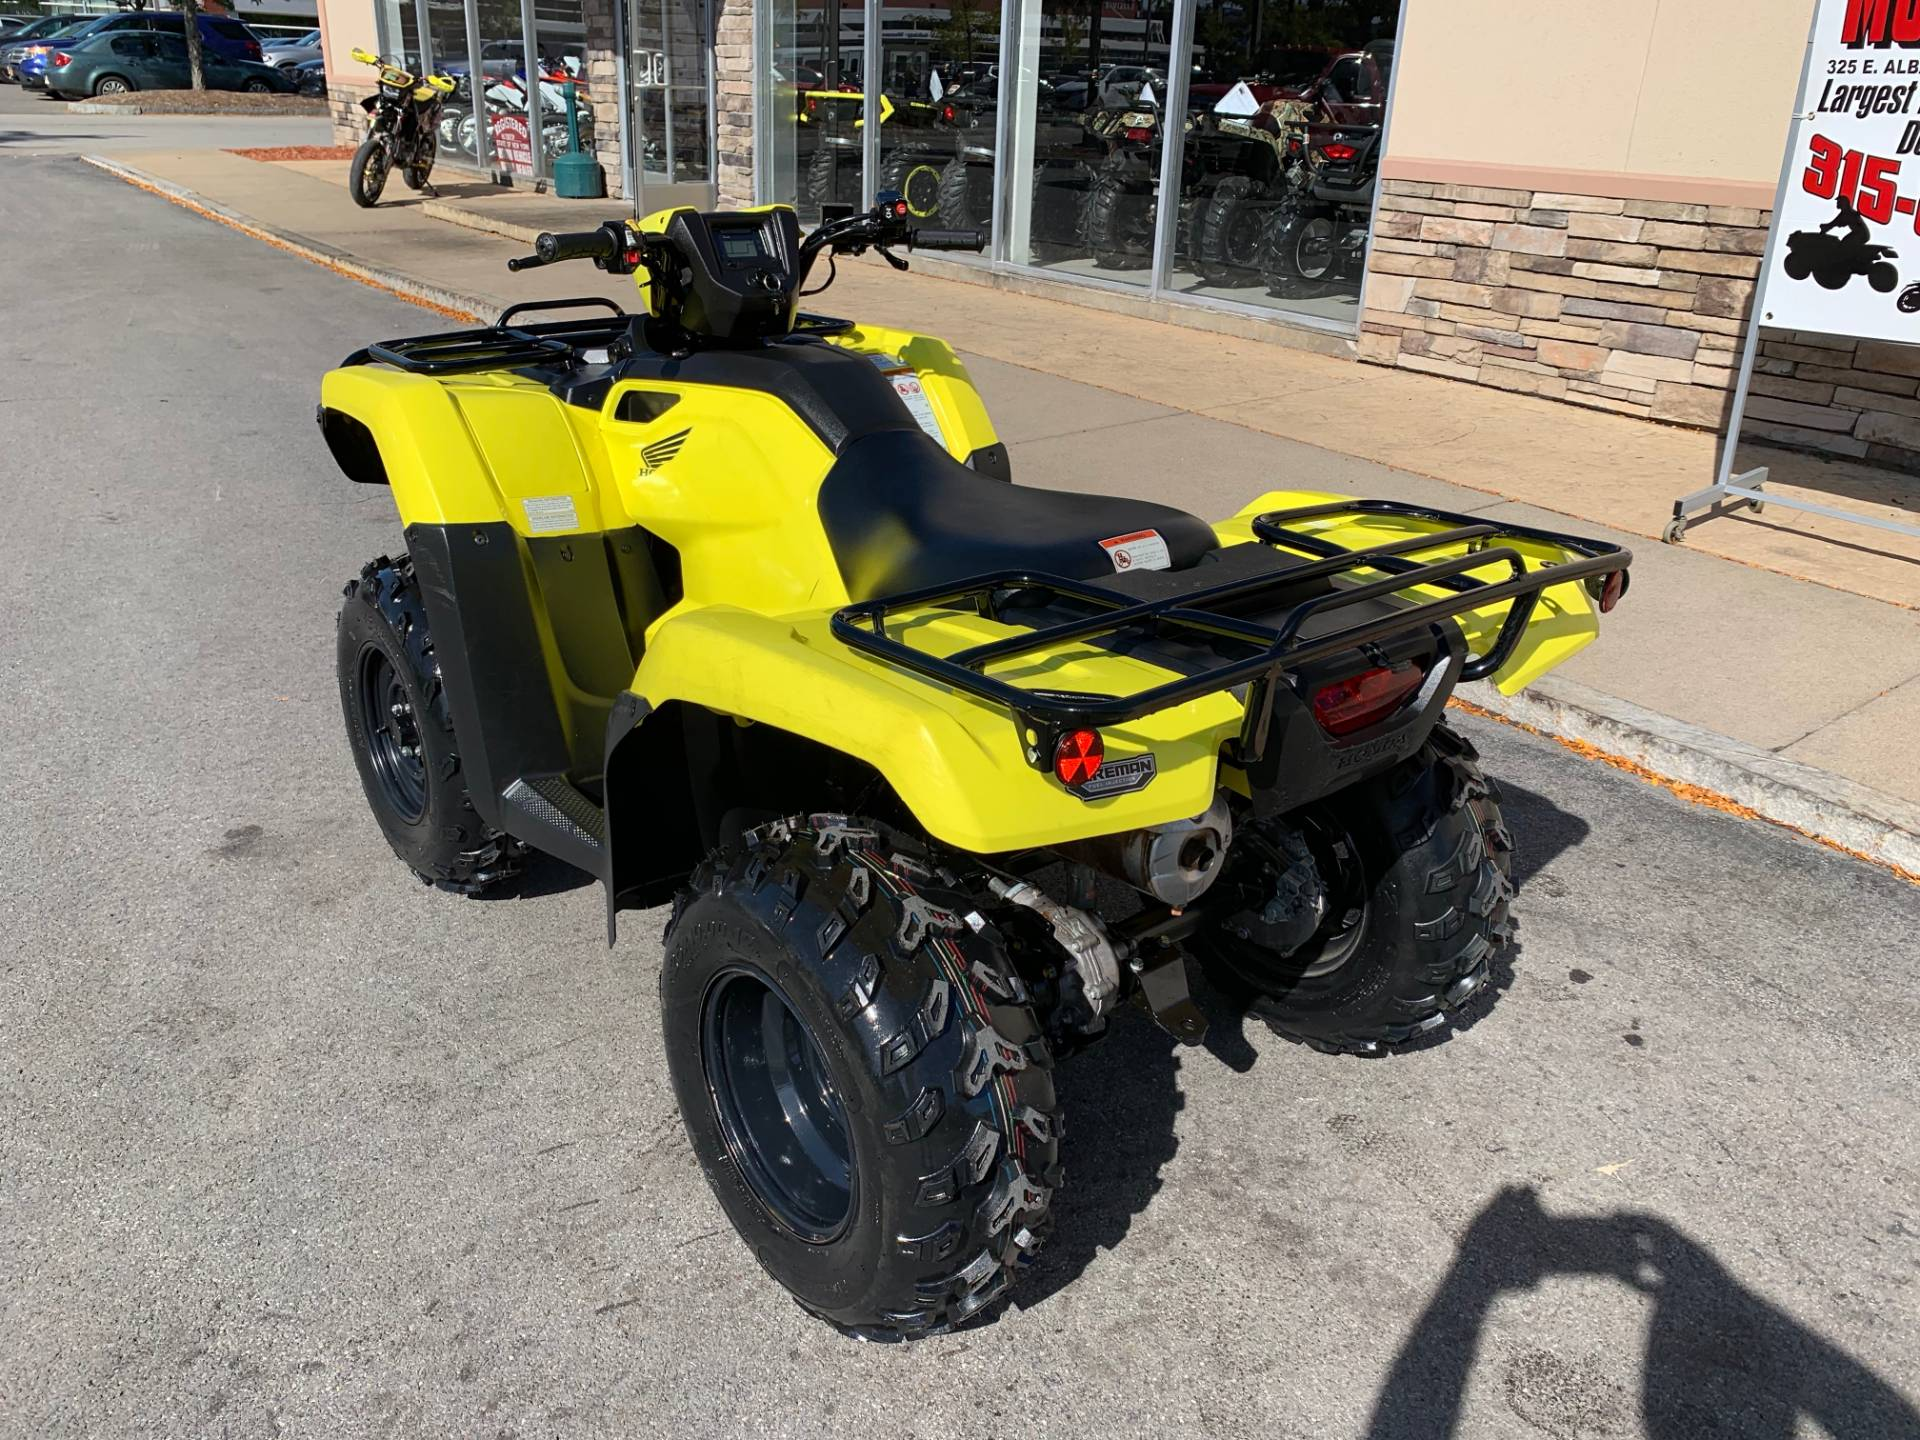 2019 Honda FourTrax Foreman 4x4 in Herkimer, New York - Photo 10